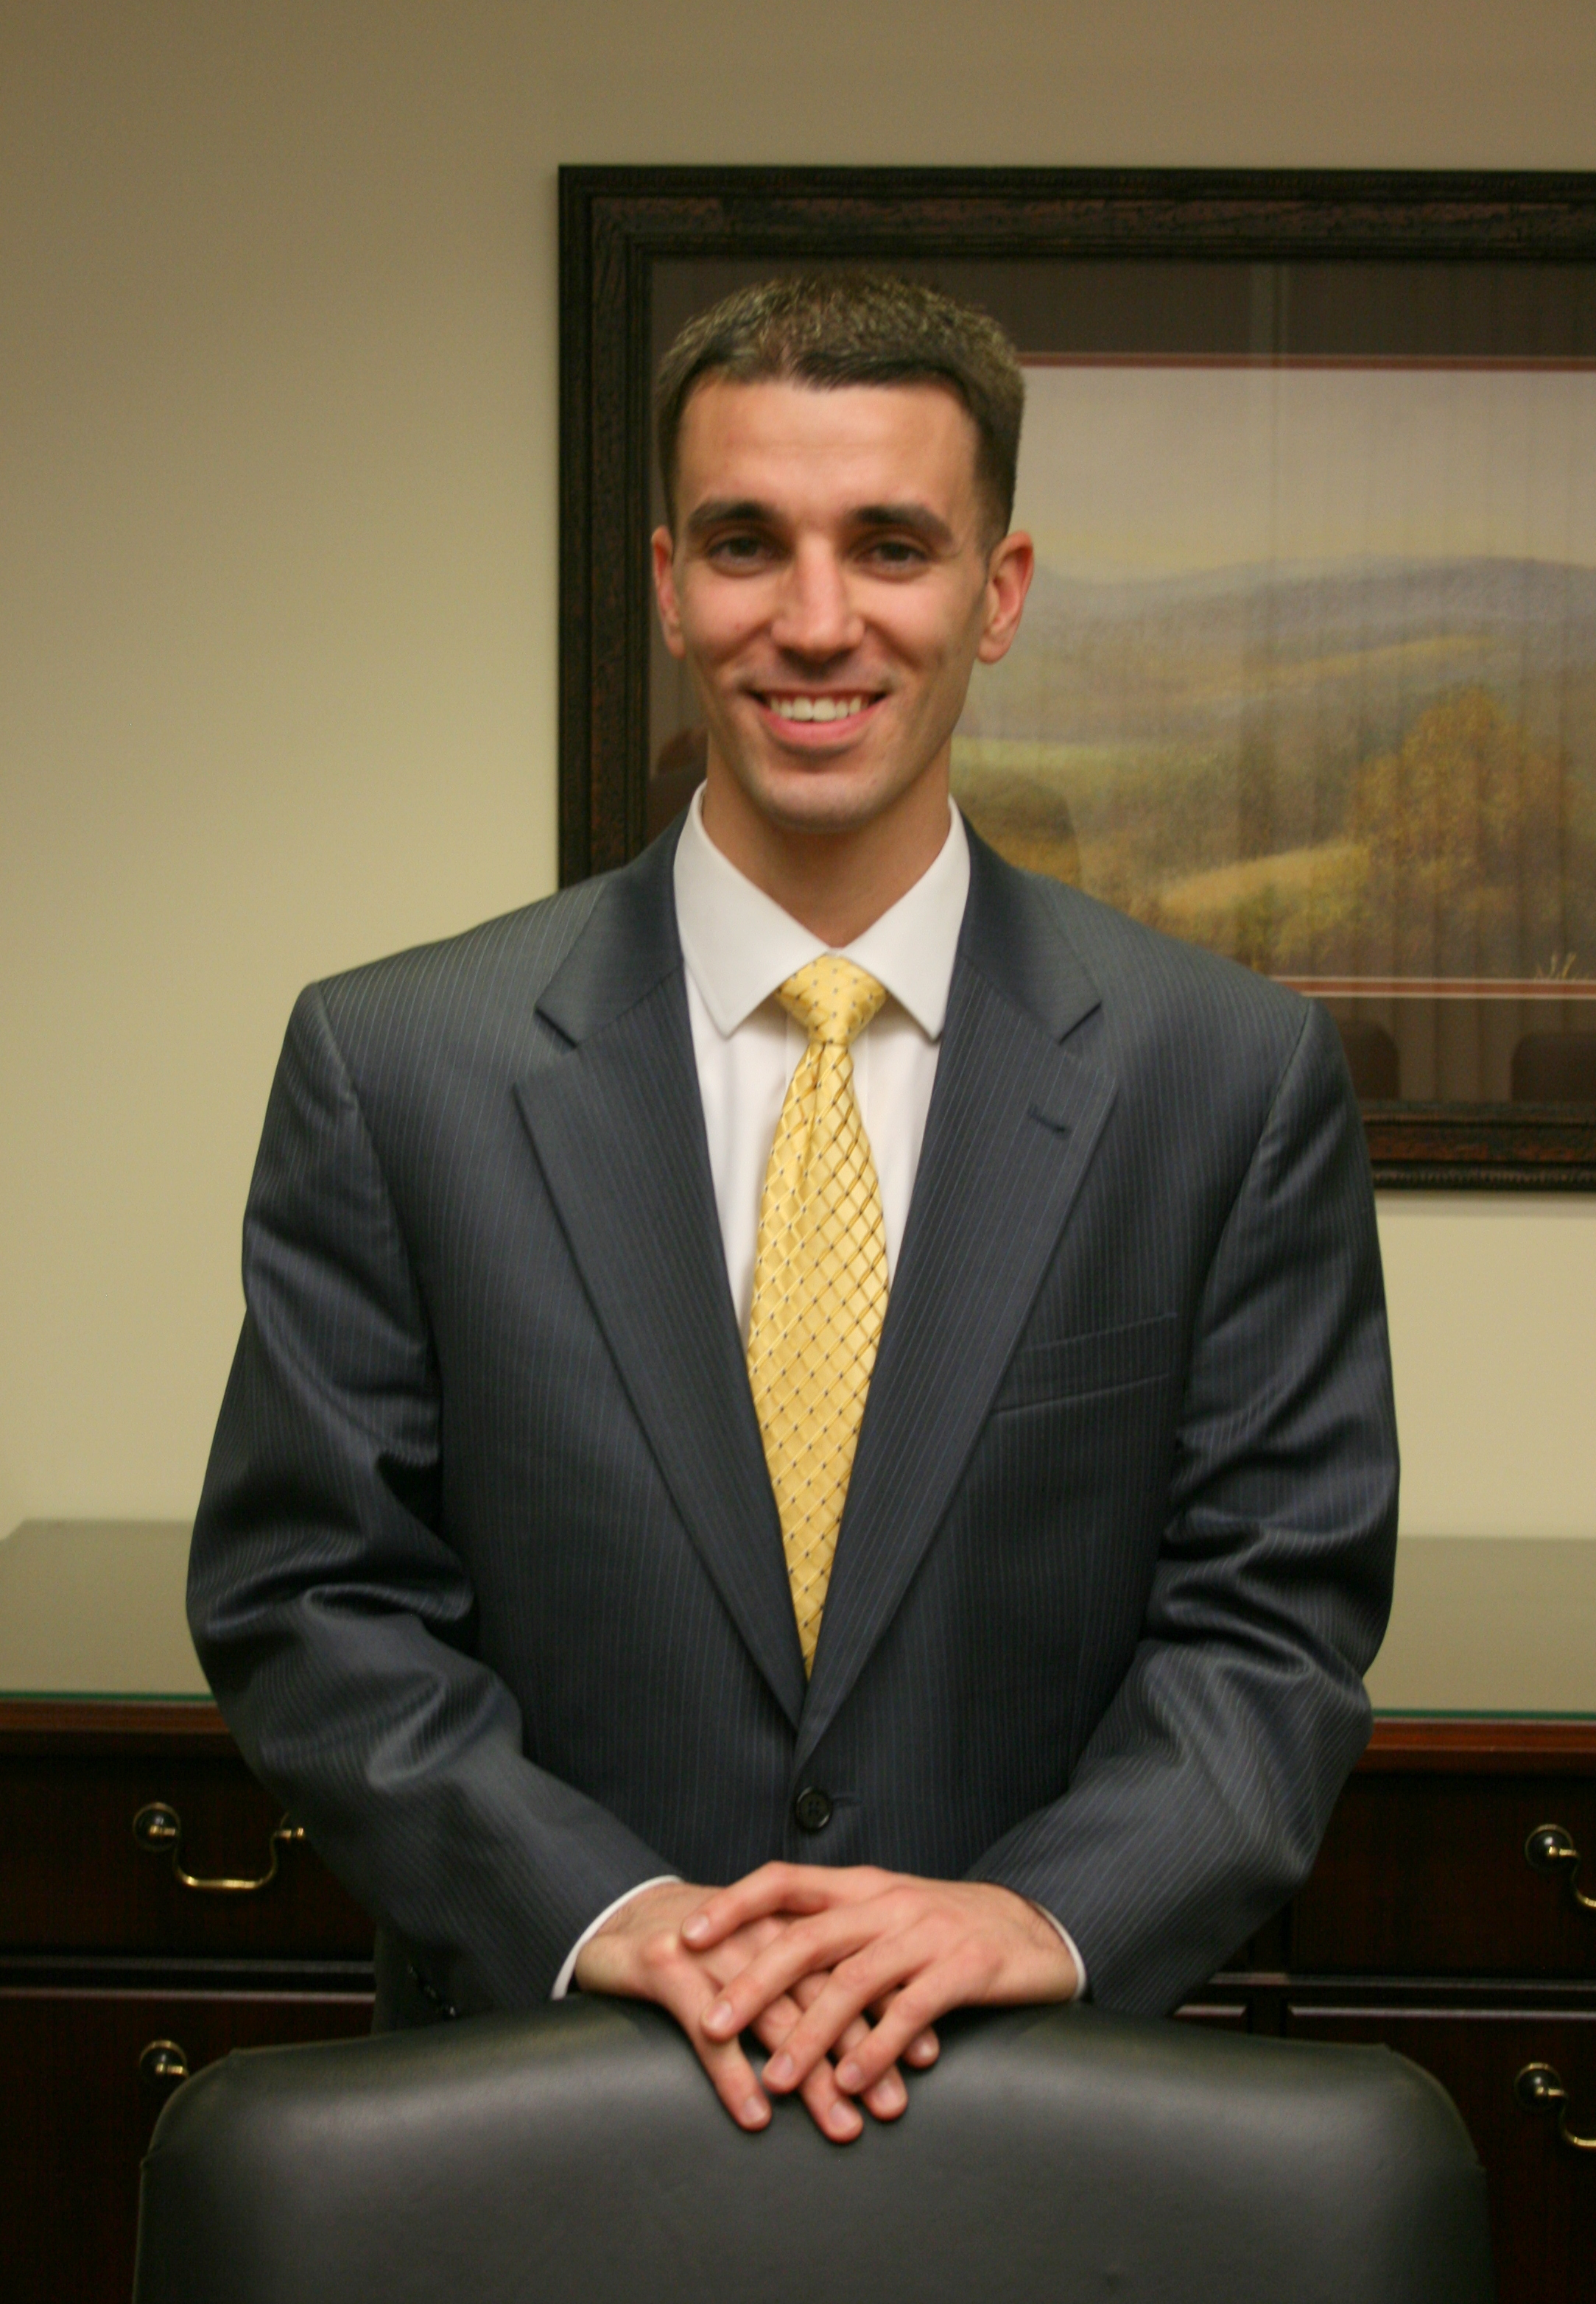 Michael Ryan, financial advisor Kensington NH